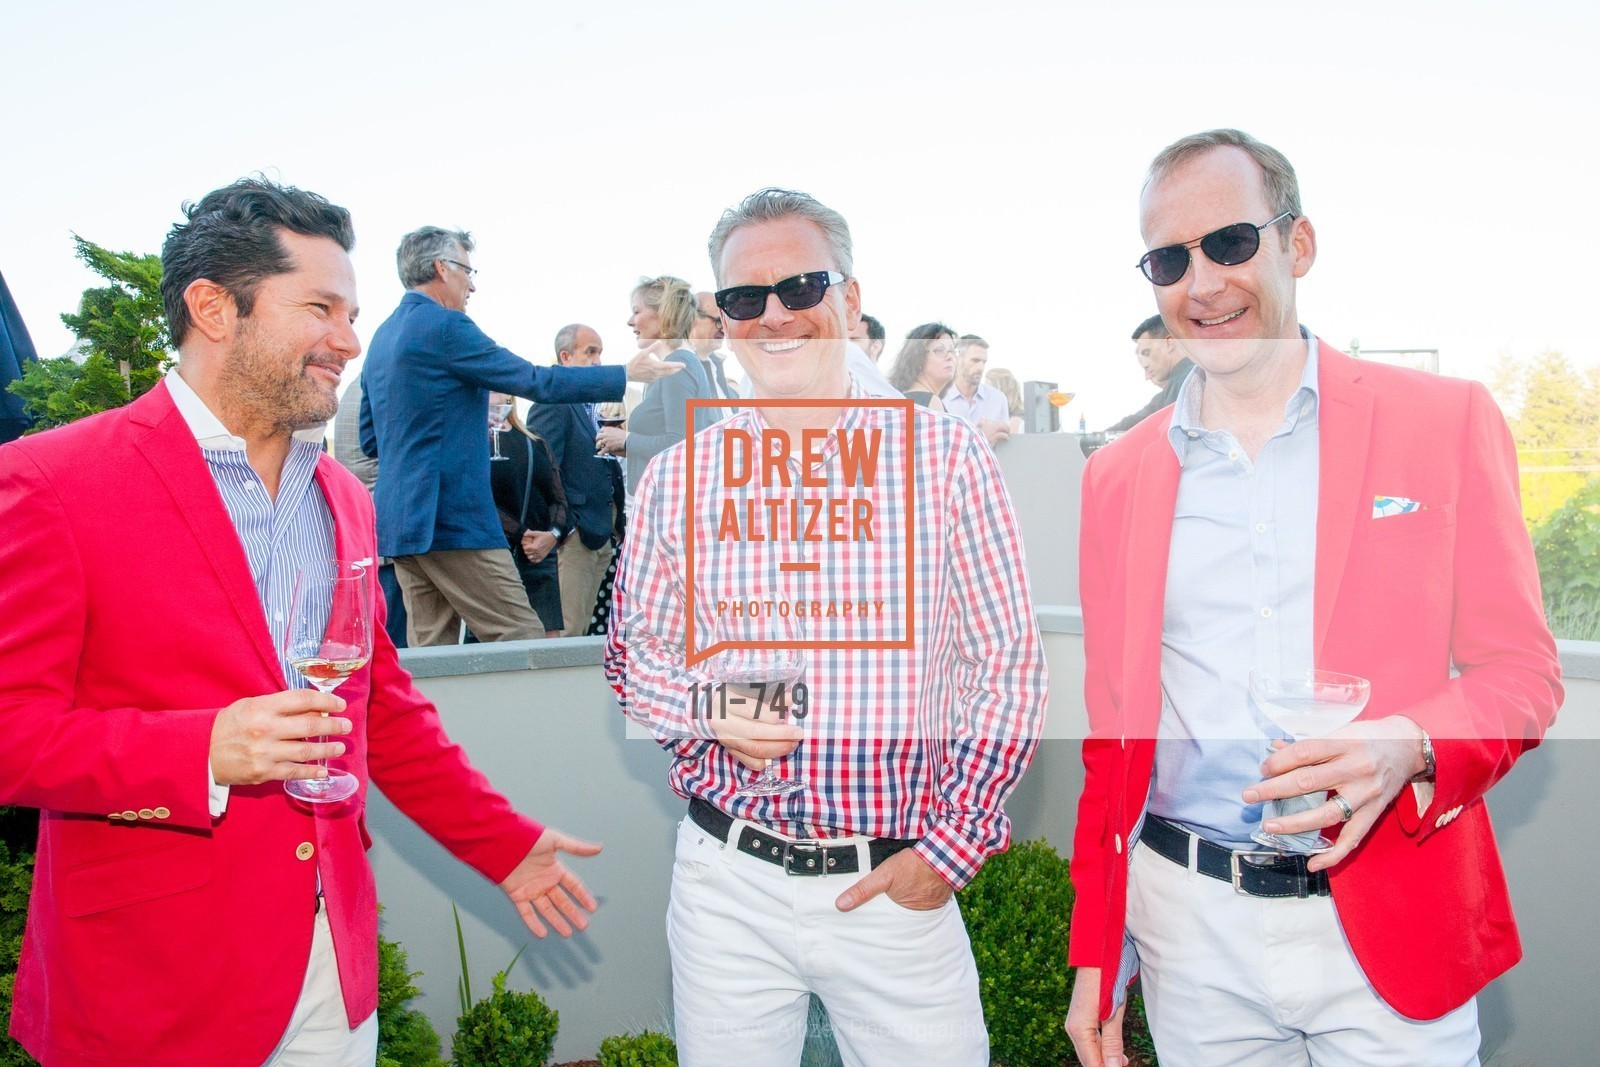 Warren Chase, Oliver Clode, James Schroeder, PETER COPPING Meets and Greets OSCAR DELA RENTA Clients and Associates at NEIMAN MARCUS, US, May 22nd, 2015,Drew Altizer, Drew Altizer Photography, full-service agency, private events, San Francisco photographer, photographer california